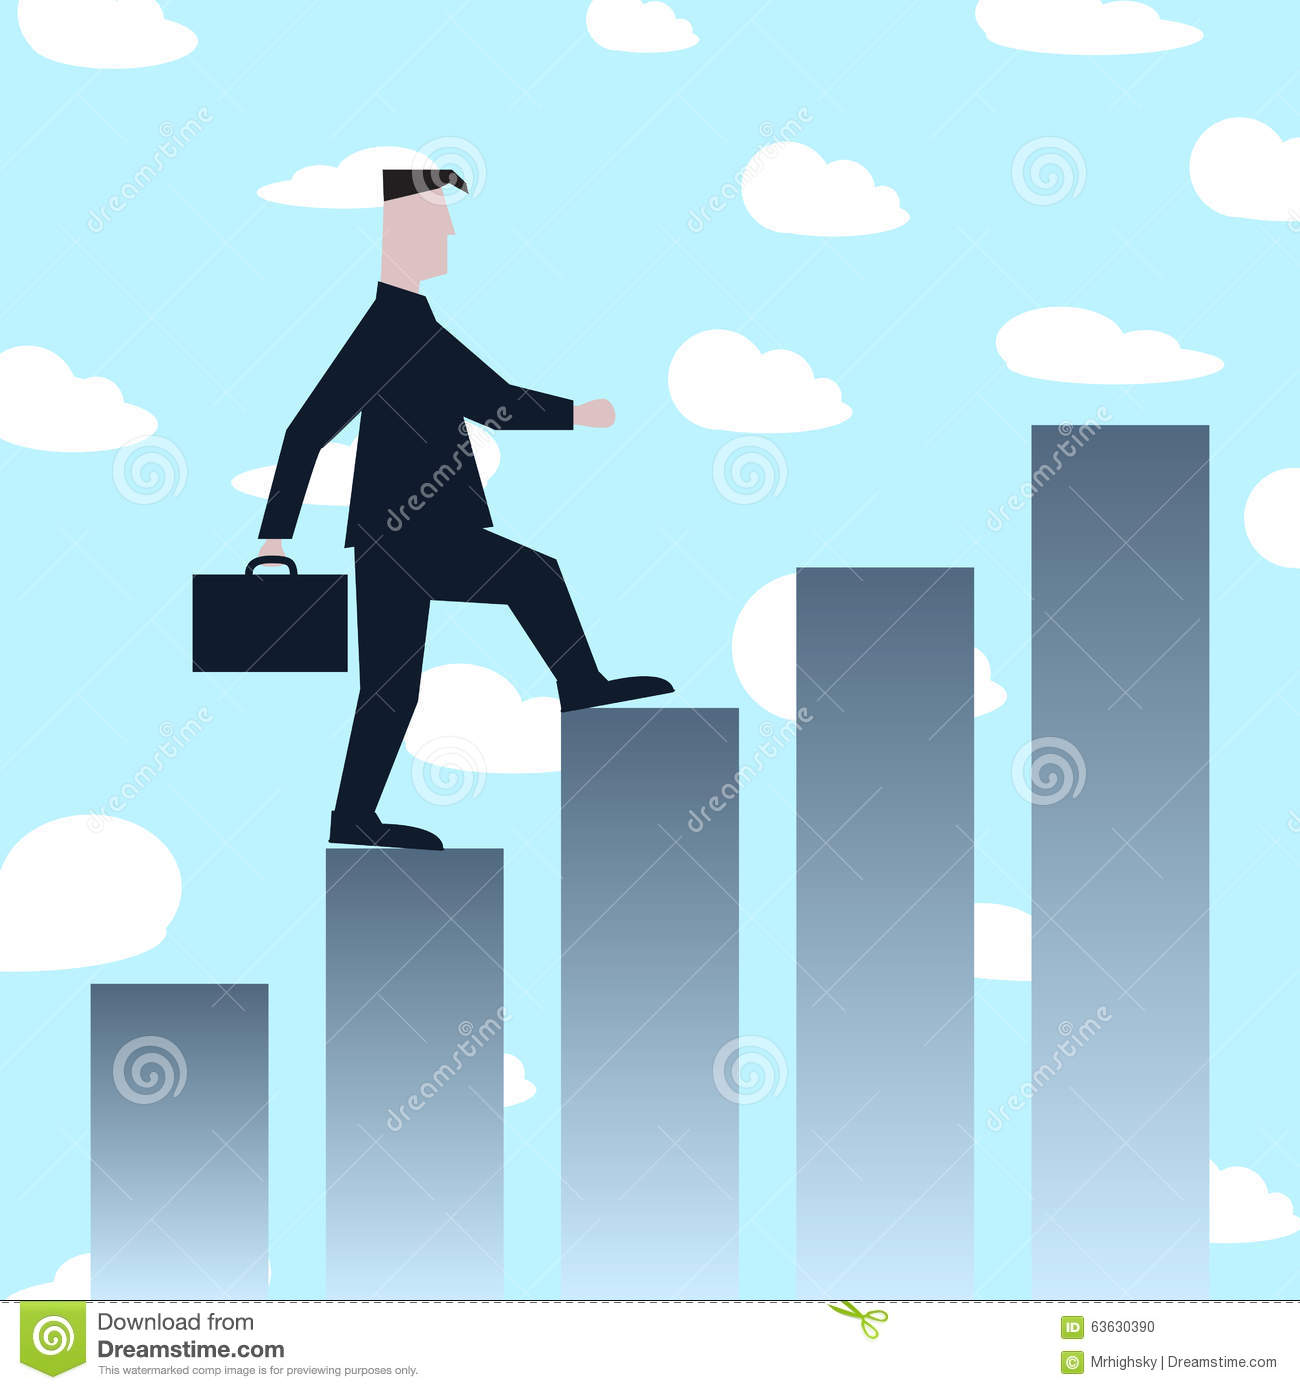 Man Climbing Success Stairs Stock Vector - Illustration of person ... for Climbing Stairs To Success  186ref